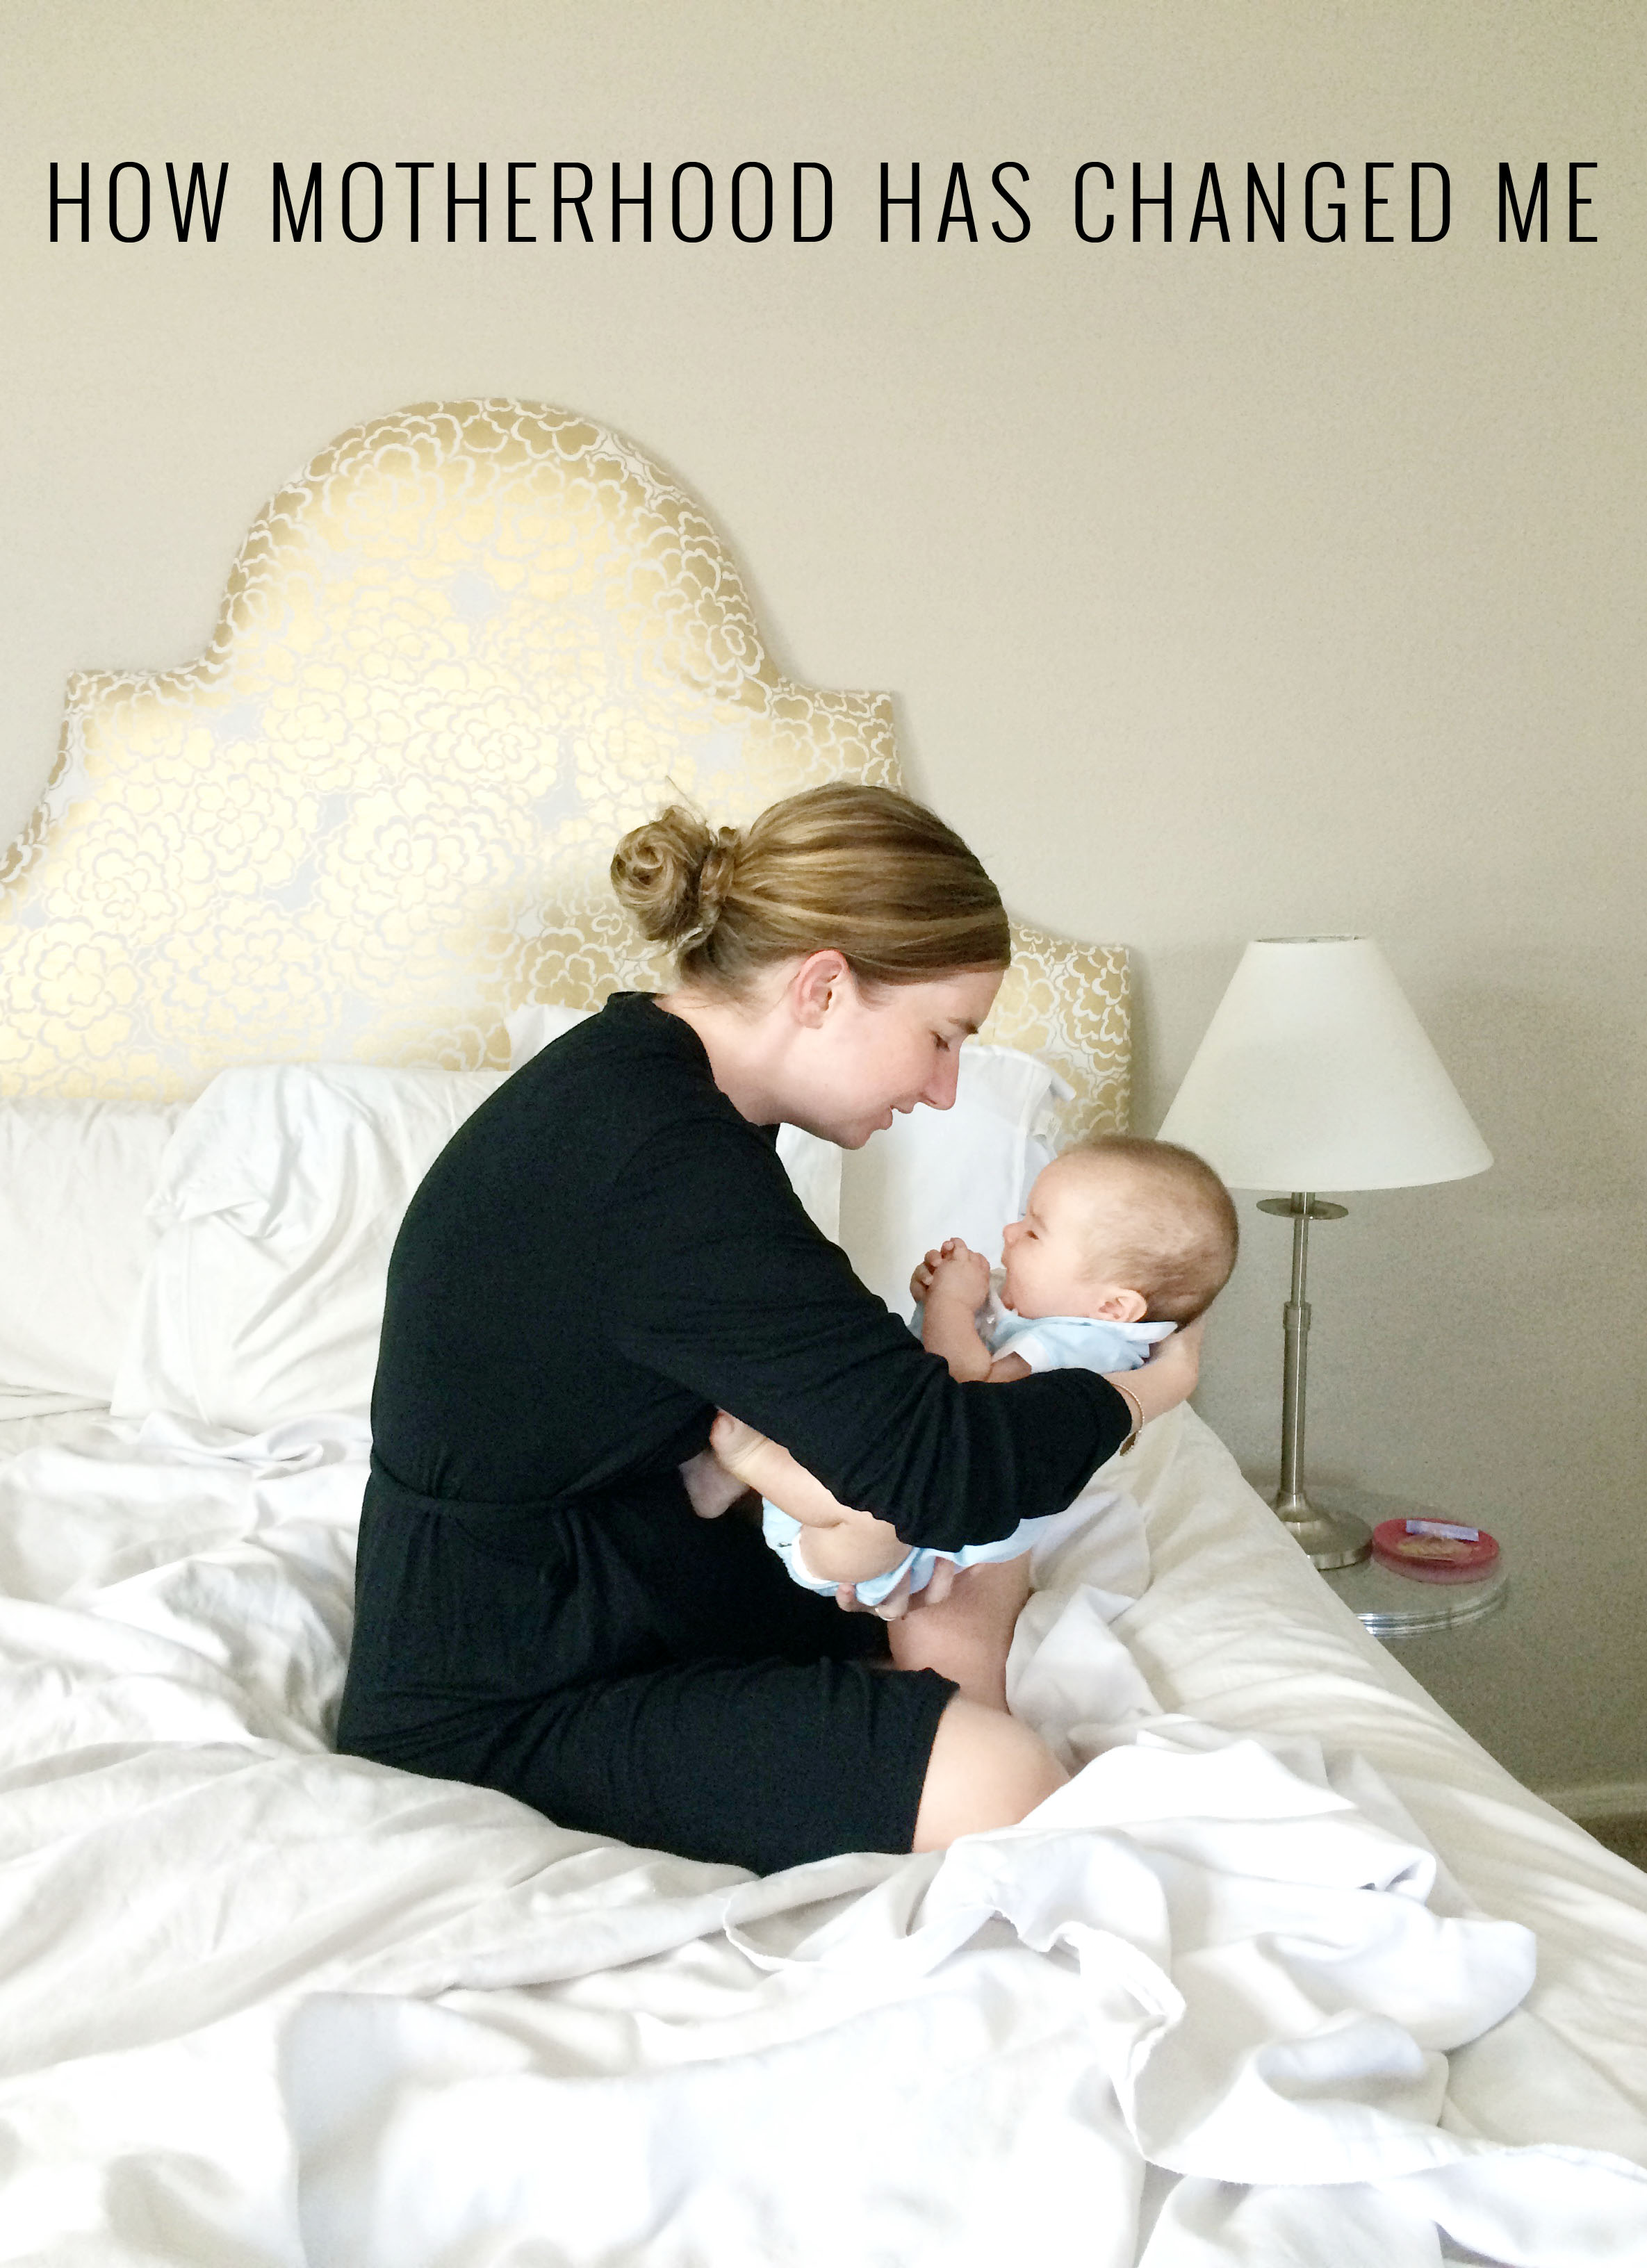 How motherhood has changed me | Momma Society-The Community of Modern Moms | www.mommasociety.com